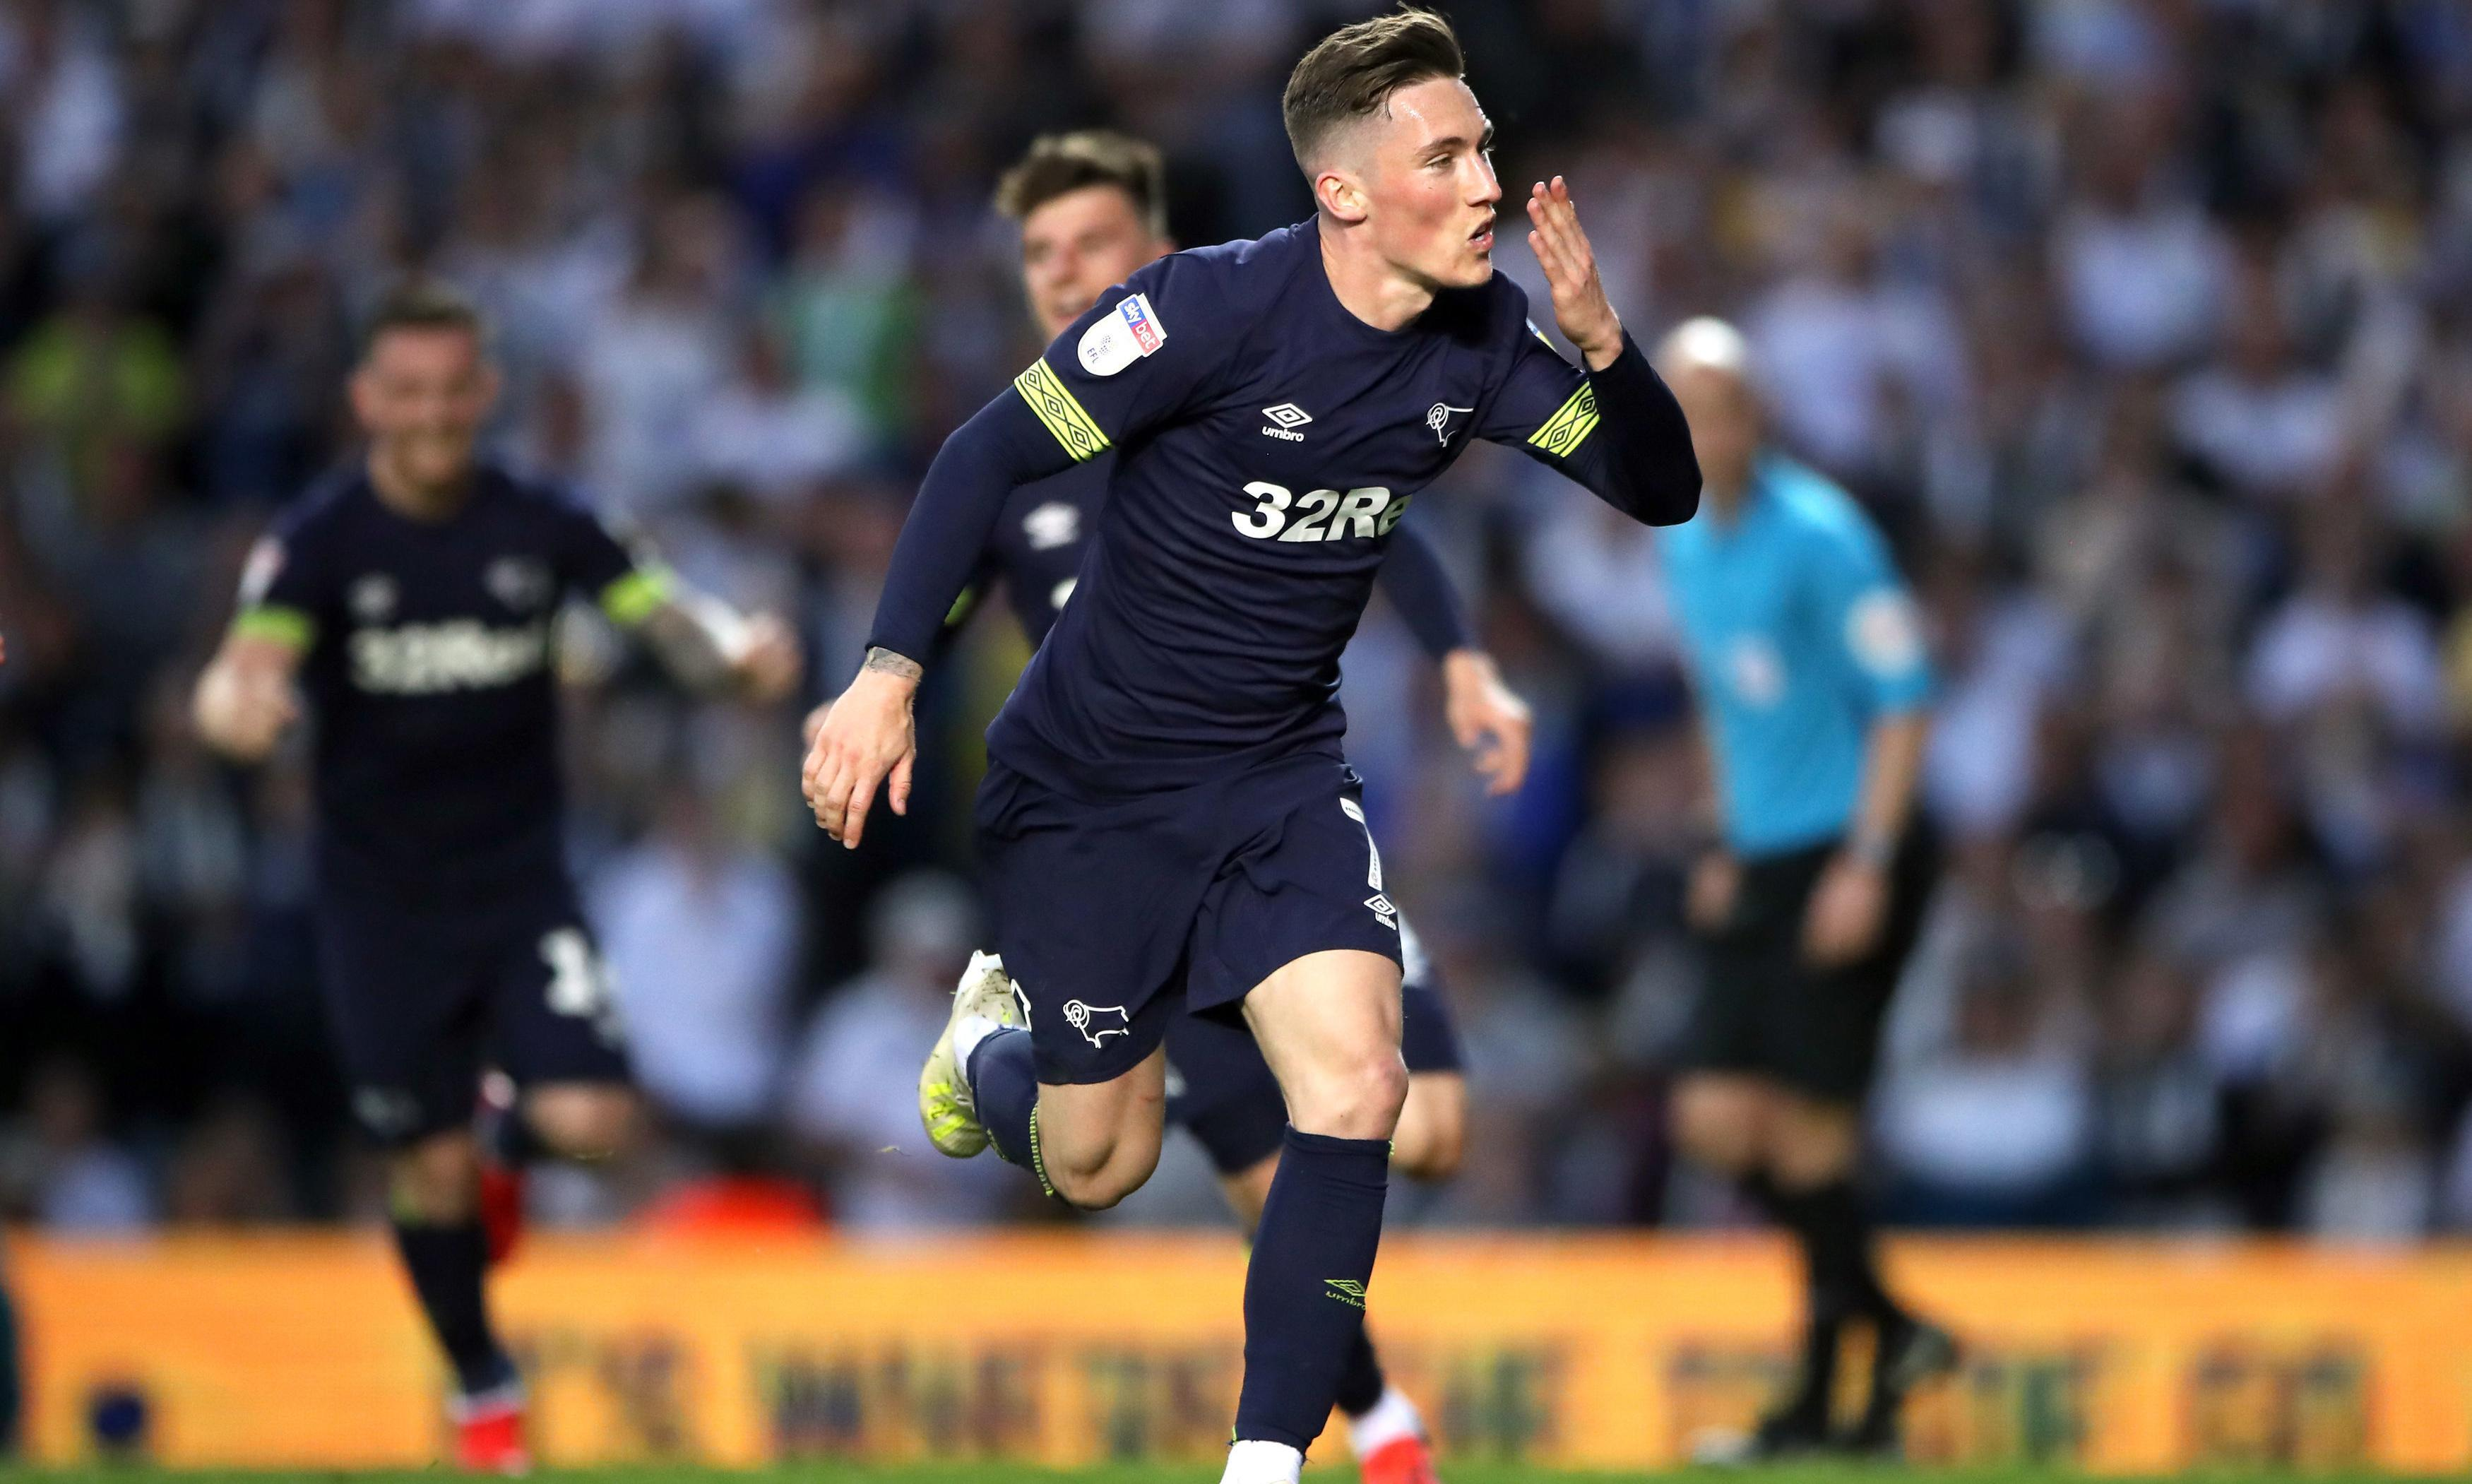 Loan star Harry Wilson wants to repay Frank Lampard for keeping faith